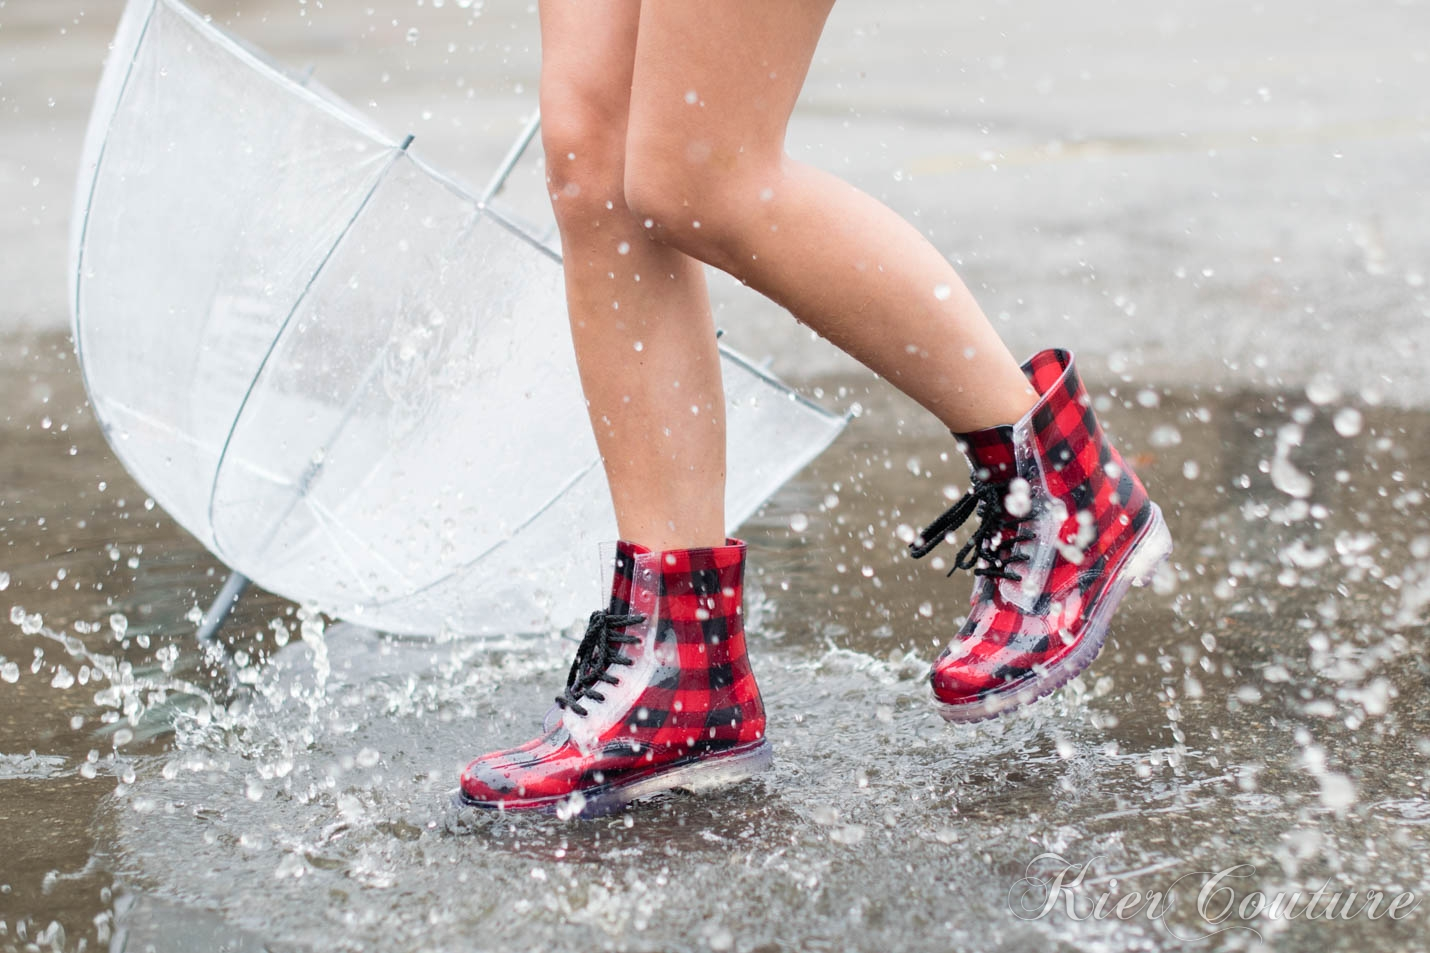 23a4aba2107 Puddle Jumping - Kier Couture